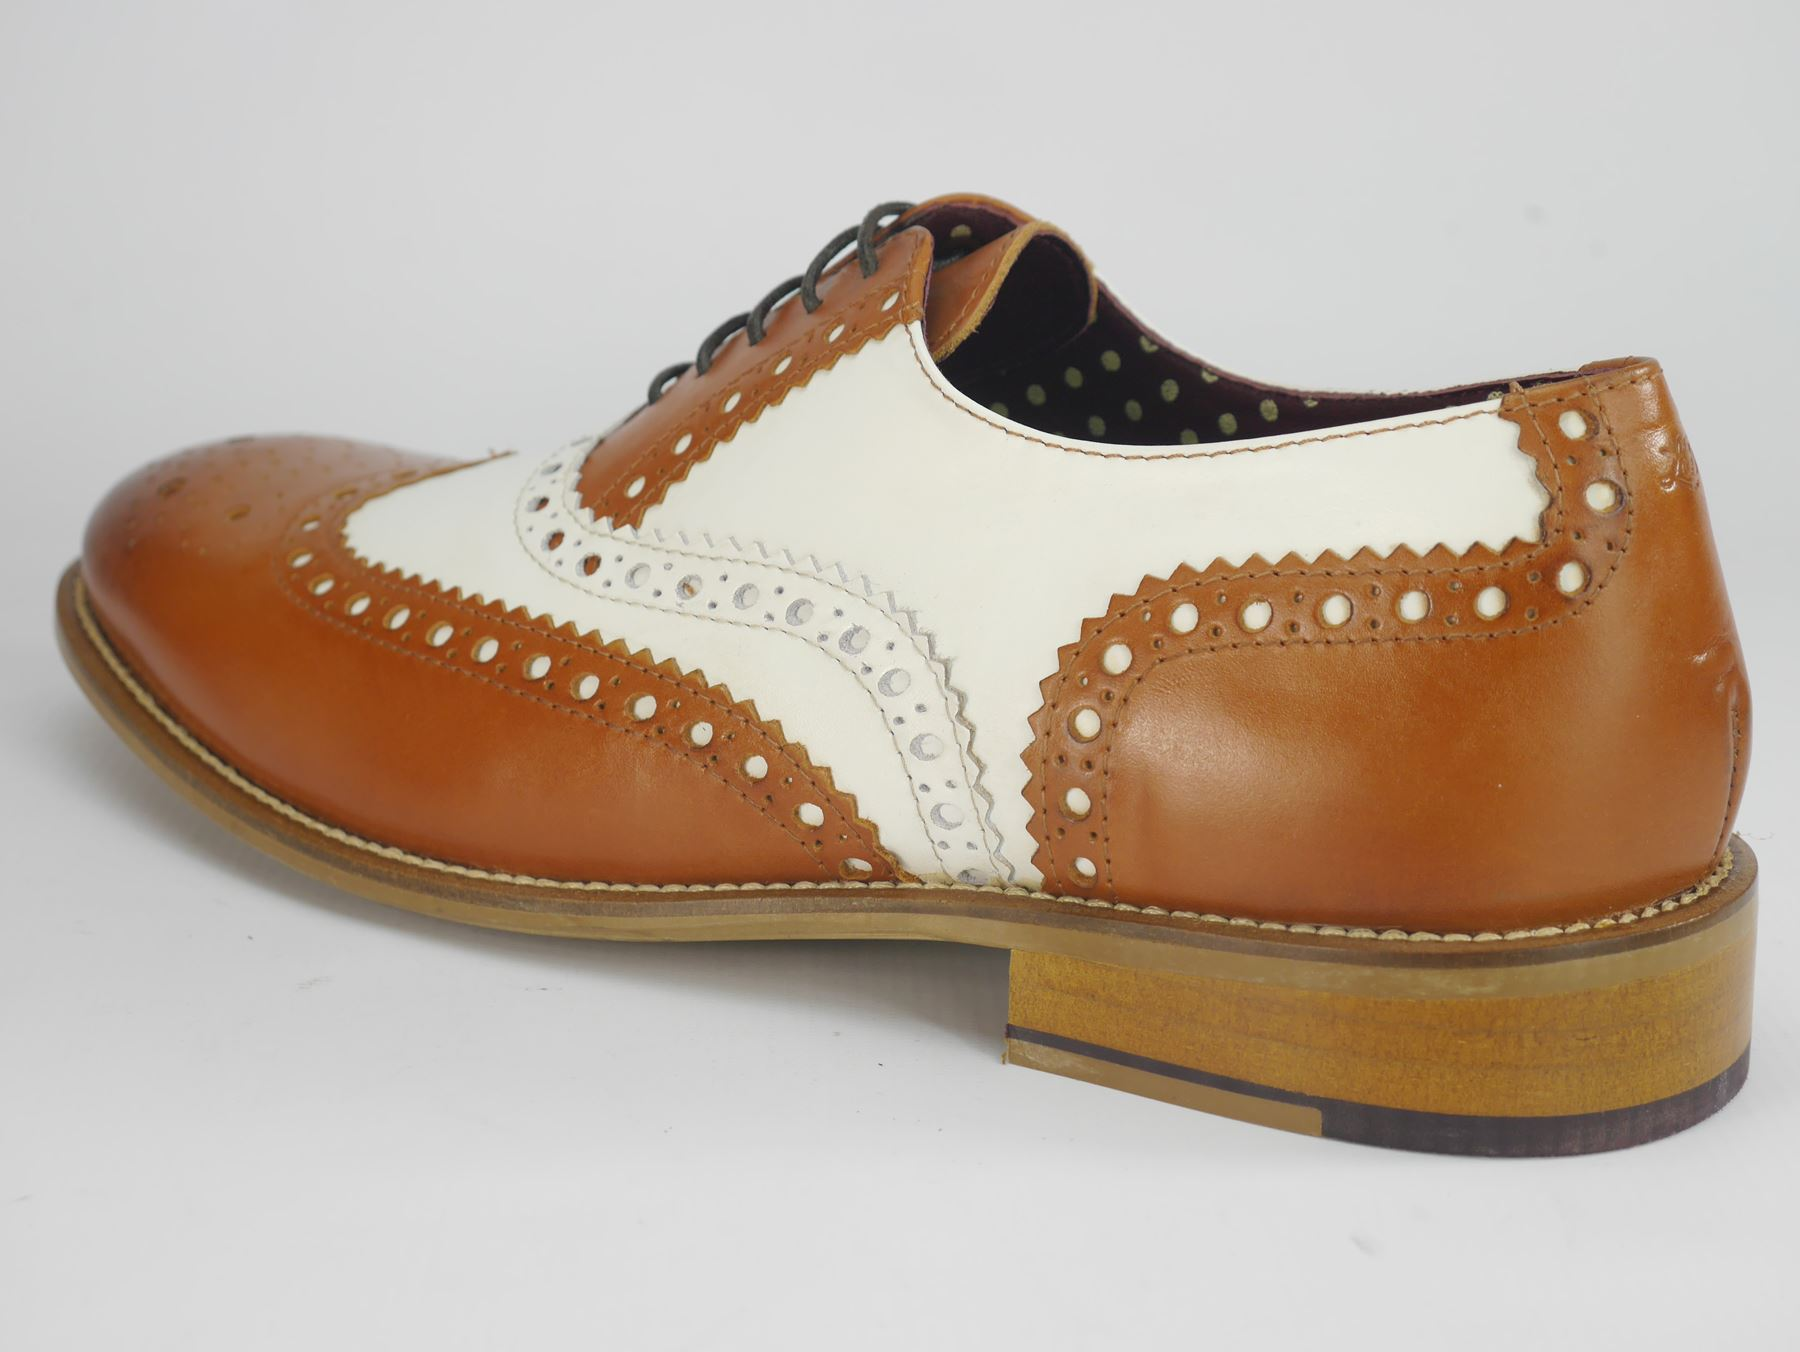 London Brogues Gatsby Tan / White Leather Lace Up Brogues Mens Leather White Round Toe Shoes 168151